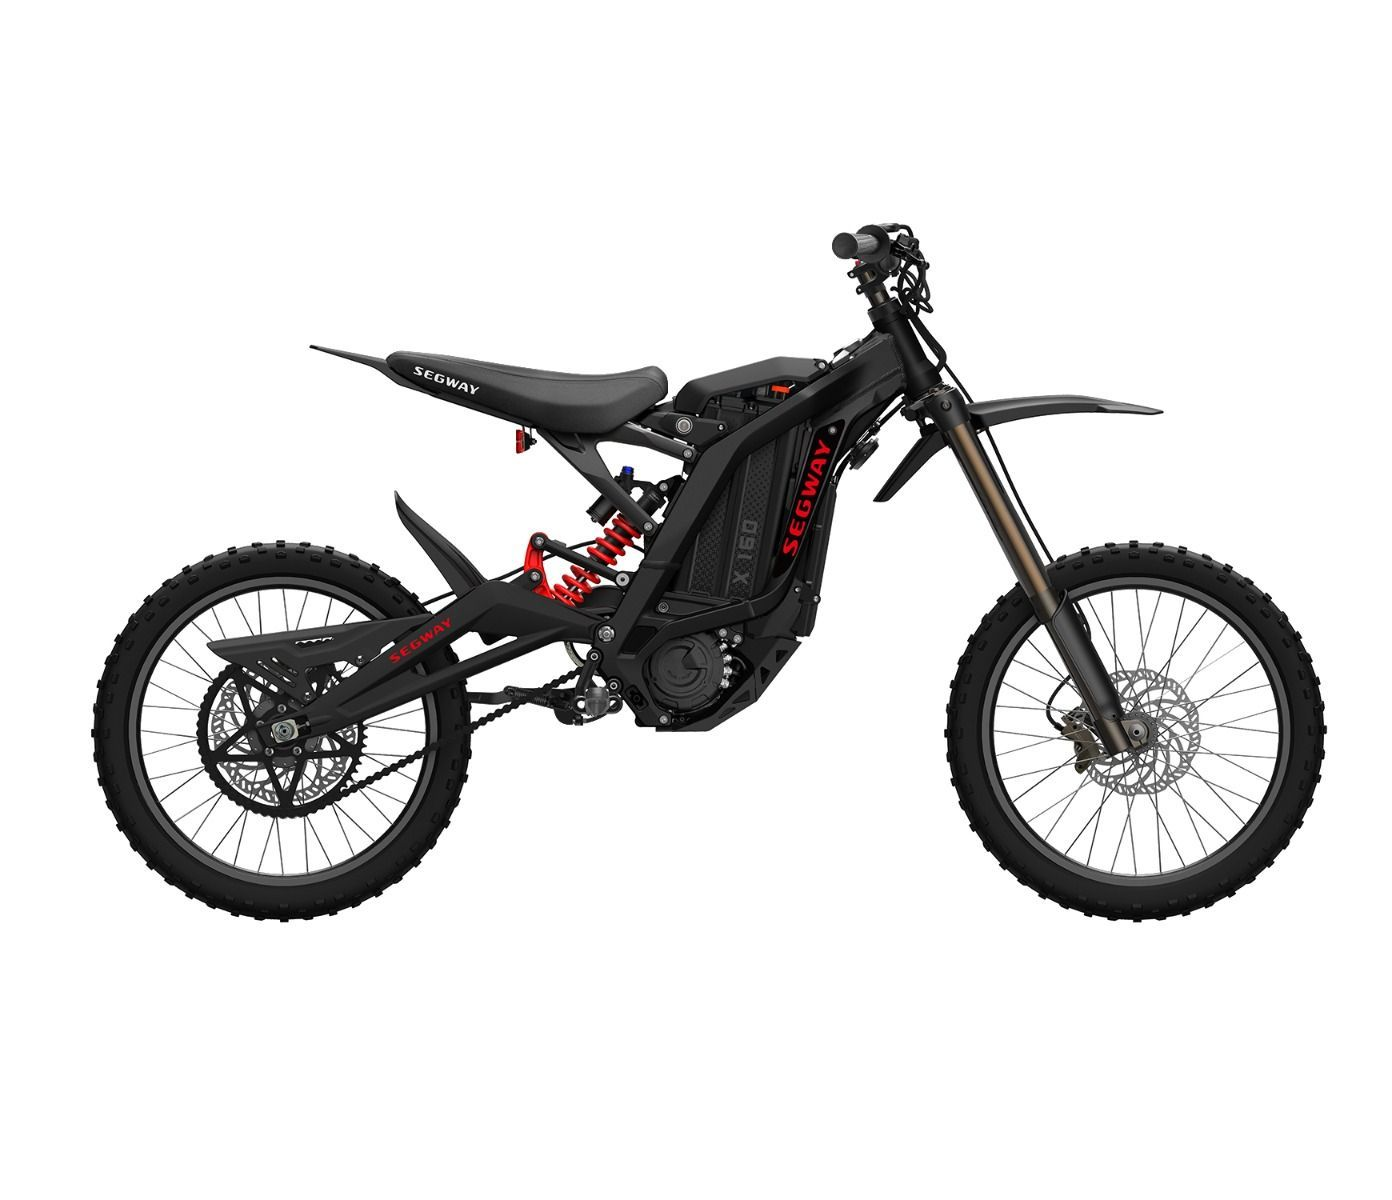 Segway X160 Youth Electric Dirt Bike